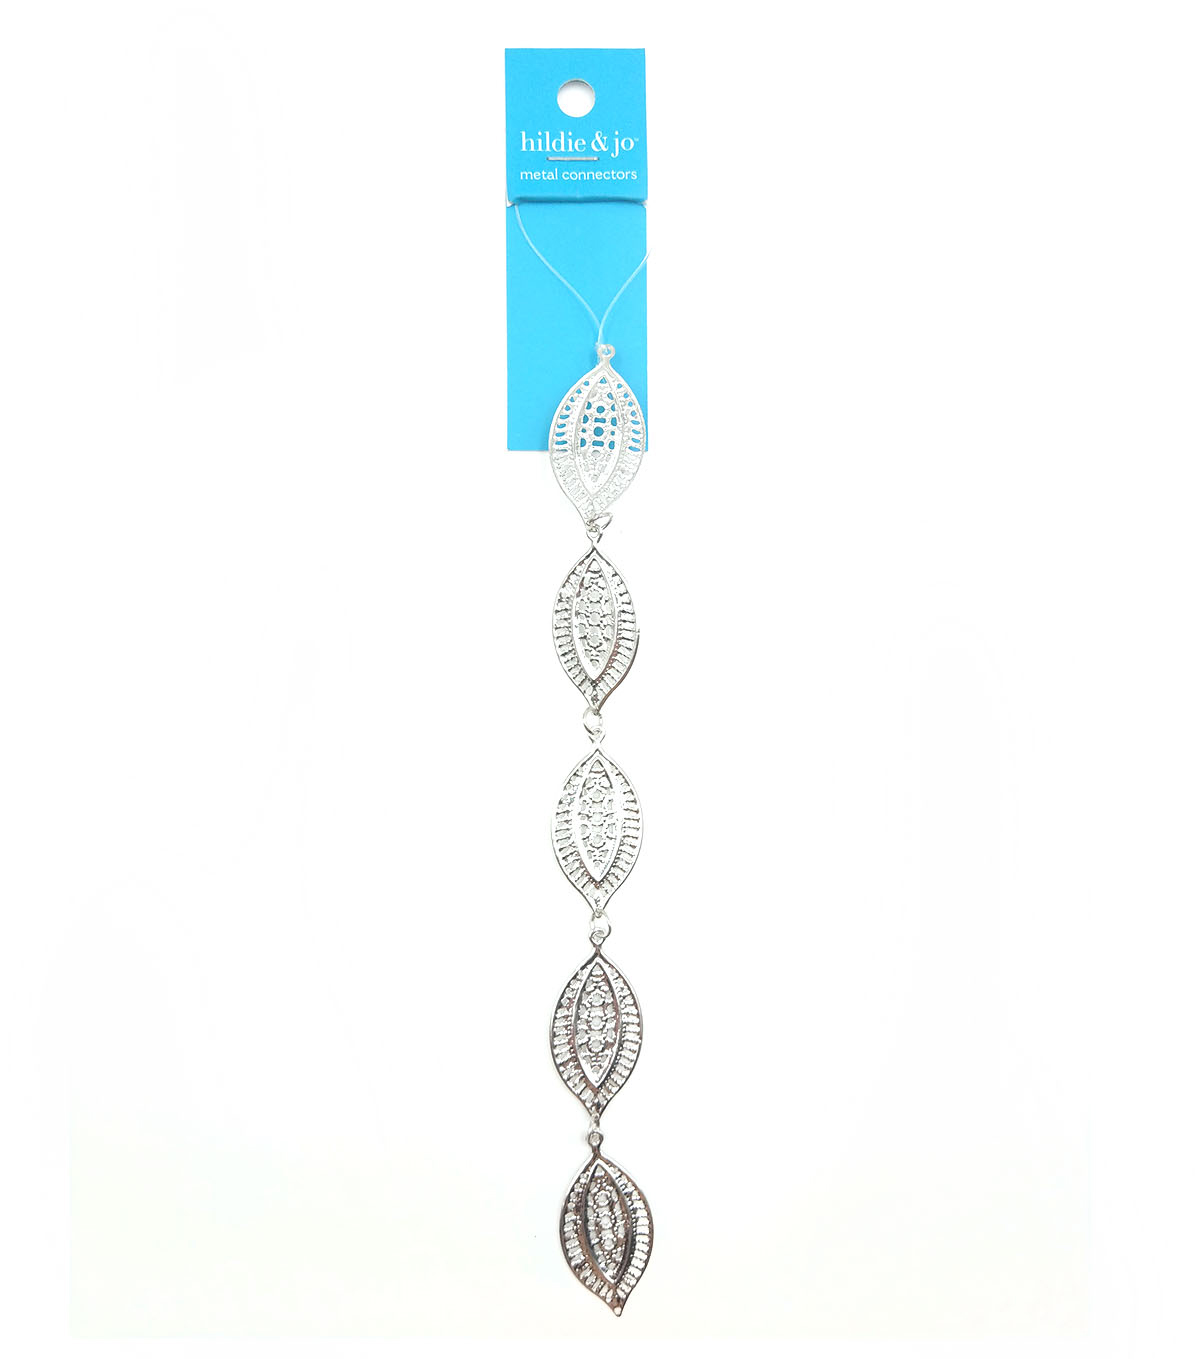 hildie & jo Laser Cut Drop Metal Connector Strung Beads-Silver